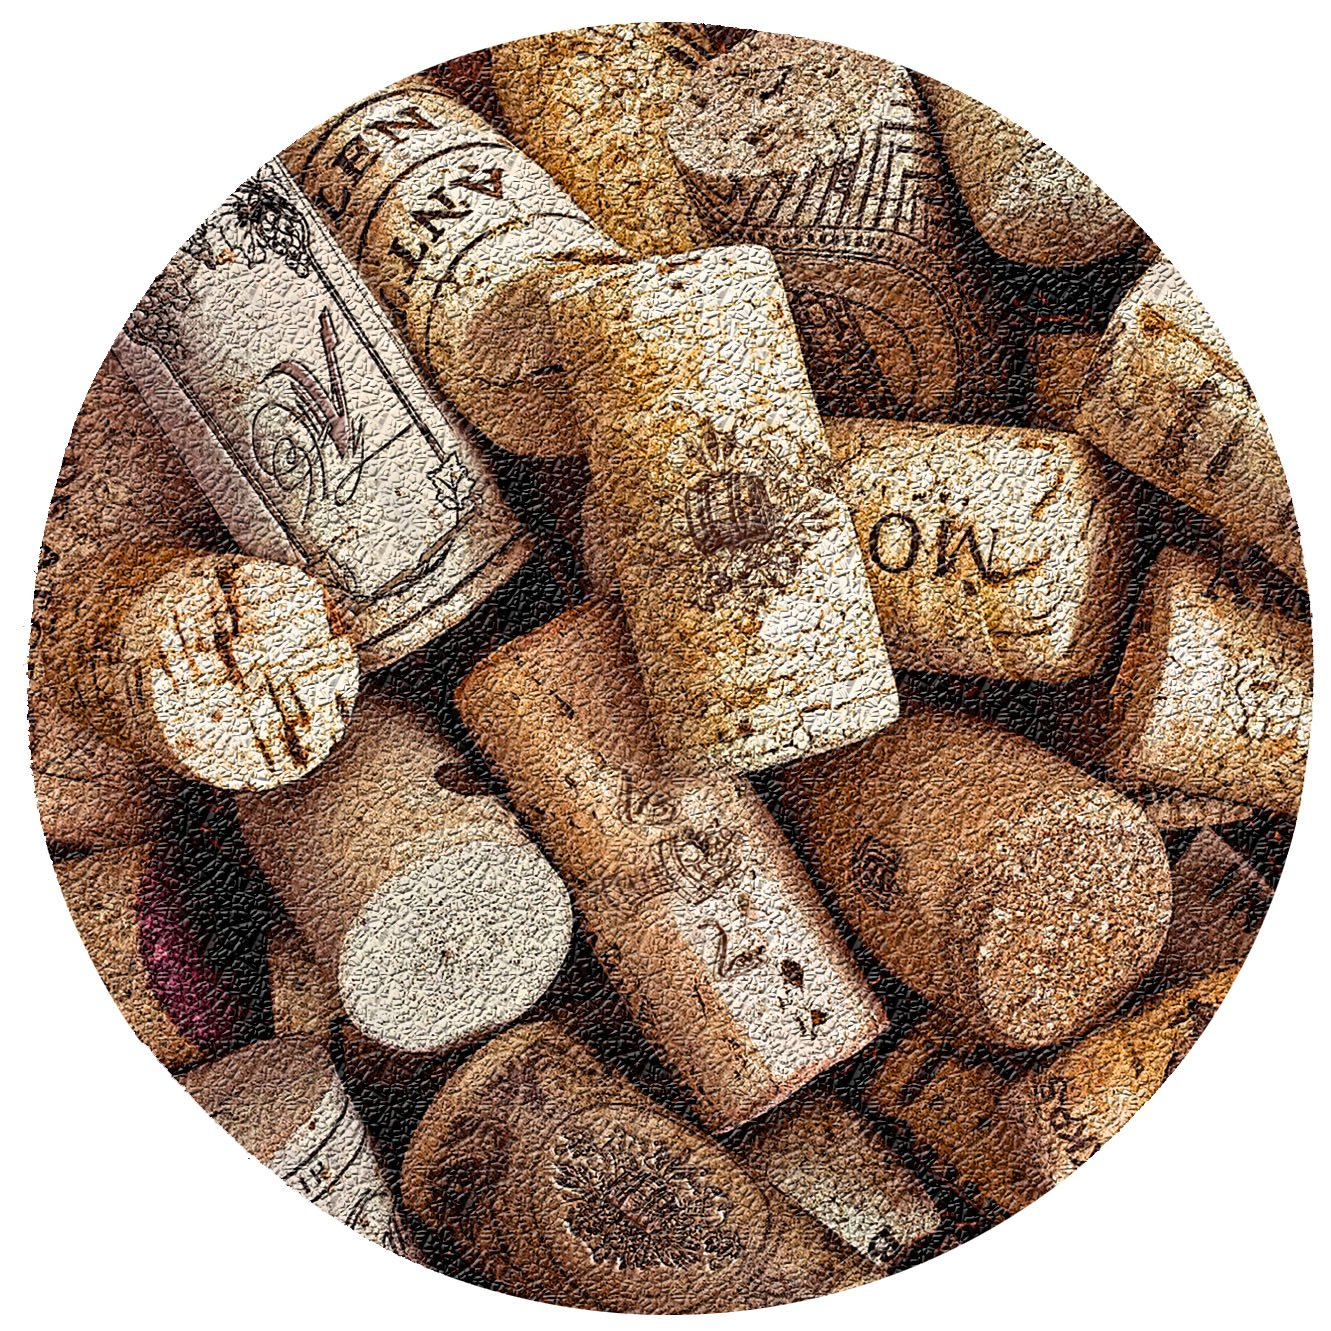 Thirstystone Corks Cork Coaster Set by Thirstystone